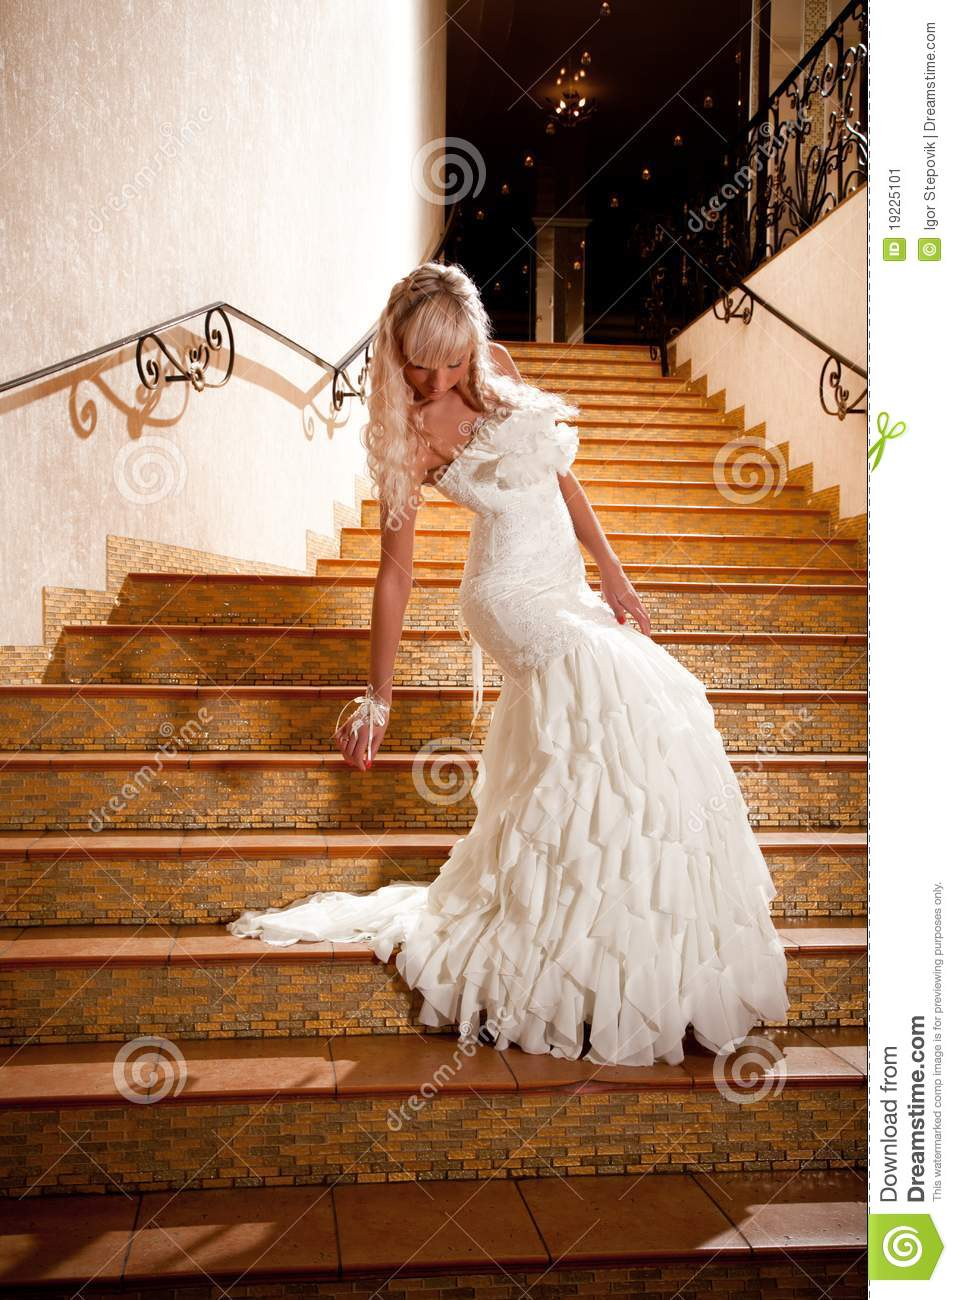 Girl in a wedding dress going down the stairs stock image for Going to a wedding dress